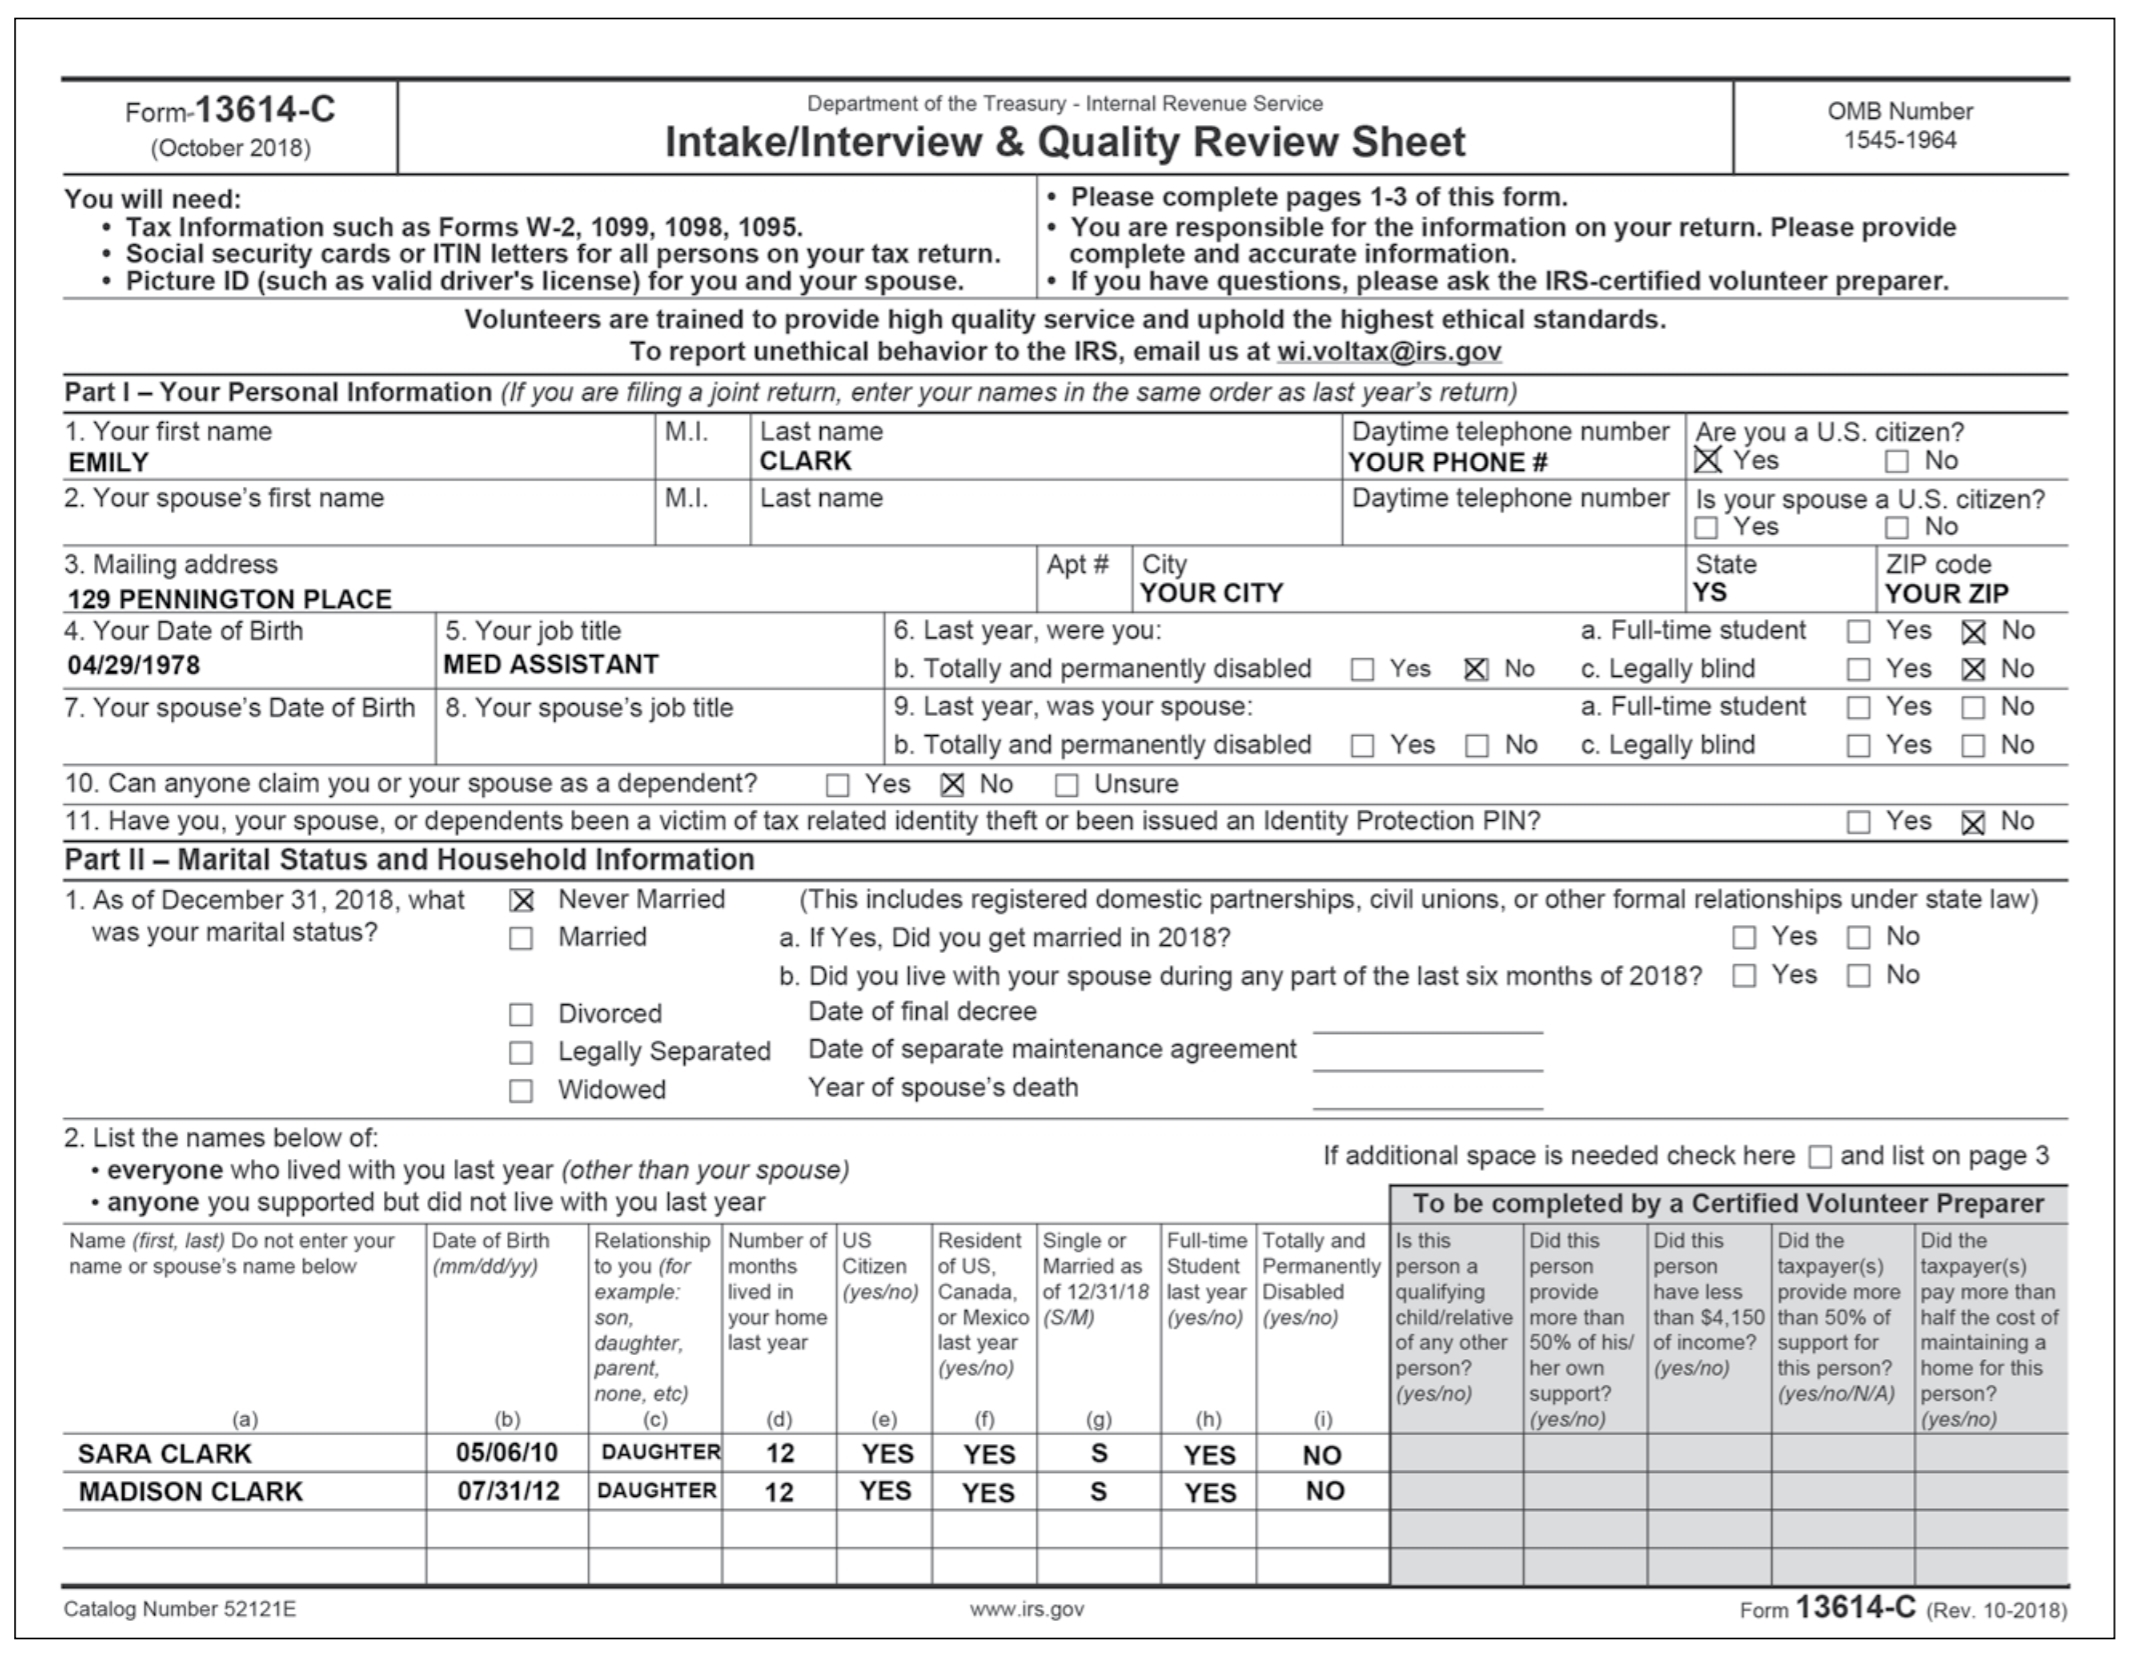 Form-13614-C Department of the Treasury -Internal Revenue Service Intake/Interview & Quality Review Sheet OMB Number 1545-1964 (October 2018) Please complete pages 1-3 of this form You are responsible for the information on your return. Please provide complete and accurate information If you have questions, please ask the IRS-certified volunteer preparen You will need: Tax Information such as Forms W-2, 1099, 1098, 1095 Social security cards or ITIN letters for all persons on your tax return Picture ID (such as valid drivers license) for you and your spouse Volunteers are trained to provide high quality service and uphold the highest ethical standards To report unethical behavior to the IRS, email us at  Part I - Your Personal Information (If you are filing a joint return, enter your names in the same order as last years return) 1. Your first name EMILY 2. Your spouses first name M.I. Last name Daytime telephone number Are you a U.S. citizen? YOUR PHONE # CLARK M.I. Last name Daytime telephone number Is your spouse a U.S. citizen? 3. Mailing address 129 PENNINGTON PLACE 4. Your Date of Birth 04/29/1978 7. Your spouses Date of Birth 8. Your spouses job title State YOUR CITY YOUR ZIP a. Full-time student Yes No 6. Last year, were you: b. Totally and permanently disabled Yes No c. Legally blind 9. Last year, was your spouse: b. Totally and permanently disabled Yes No c. Legally blind 5. Your job title MED ASSISTANT a. Full-time student □ Yes □ No 10. Can anyone claim you or your spouse as a dependent? Yes 凶No Unsure 11. Have you, your spouse, or dependents been a victim of tax related identity theft or been issued an Identity Protection PIN? Part II-Marital Status and Household Information 1. As of December 31, 2018, what X Never Married (This includes registered domestic partnerships, civil unions, or other formal relationships under state law) was your marital status? Married a. If Yes, Did you get married in 2018? b. Did you live with your spouse during any part of the last six months of 2018 YesNo Date of final decree Date of separate maintenance agreement Year of spouses death vorced □ Legally Separated □ Widowed 2. List the names below of everyone who lived with you last year (other than your spouse) anyone you supported but did not live with you last year If additional space is needed check hereand list on page 3 To be completed by a Certified Volunteer Preparer Name (first, last) Do not enter your Date of Birth Relationship Number of US name or spouses name below Resident Single or Full-time Totally and Is this Did this Did this Did the mm/ddlyy) toyou (for months Citizen of US, Married as Student Permanently person a personperson taxpayer(s) taxpayer(s) example: lived in (yes/no) Canada, of 12/31/18 last year Disabled qualifying provide have less provide more pay more than son daughter, last year parent, none, eto) your home or Mexico (S/M) last year (yes/no) (yesno) | (yes/no) child/relative | more than of any other 50% of his/ | of income? | support for person? her own (yes/no) this person? (yes/no)support? | than $4,150 | than 50% of | half the cost of l maintaining a home for this yes/no/N/A) person? (yes/no) SARA CLARK MADISON CLARK 05/06/10 DAUGHTER12 07131/12 DAUGHTER12 YES YES YES YES YES YES Catalog Number 52121E www.irs.gov Form 13614-C (Rev. 10-2018)